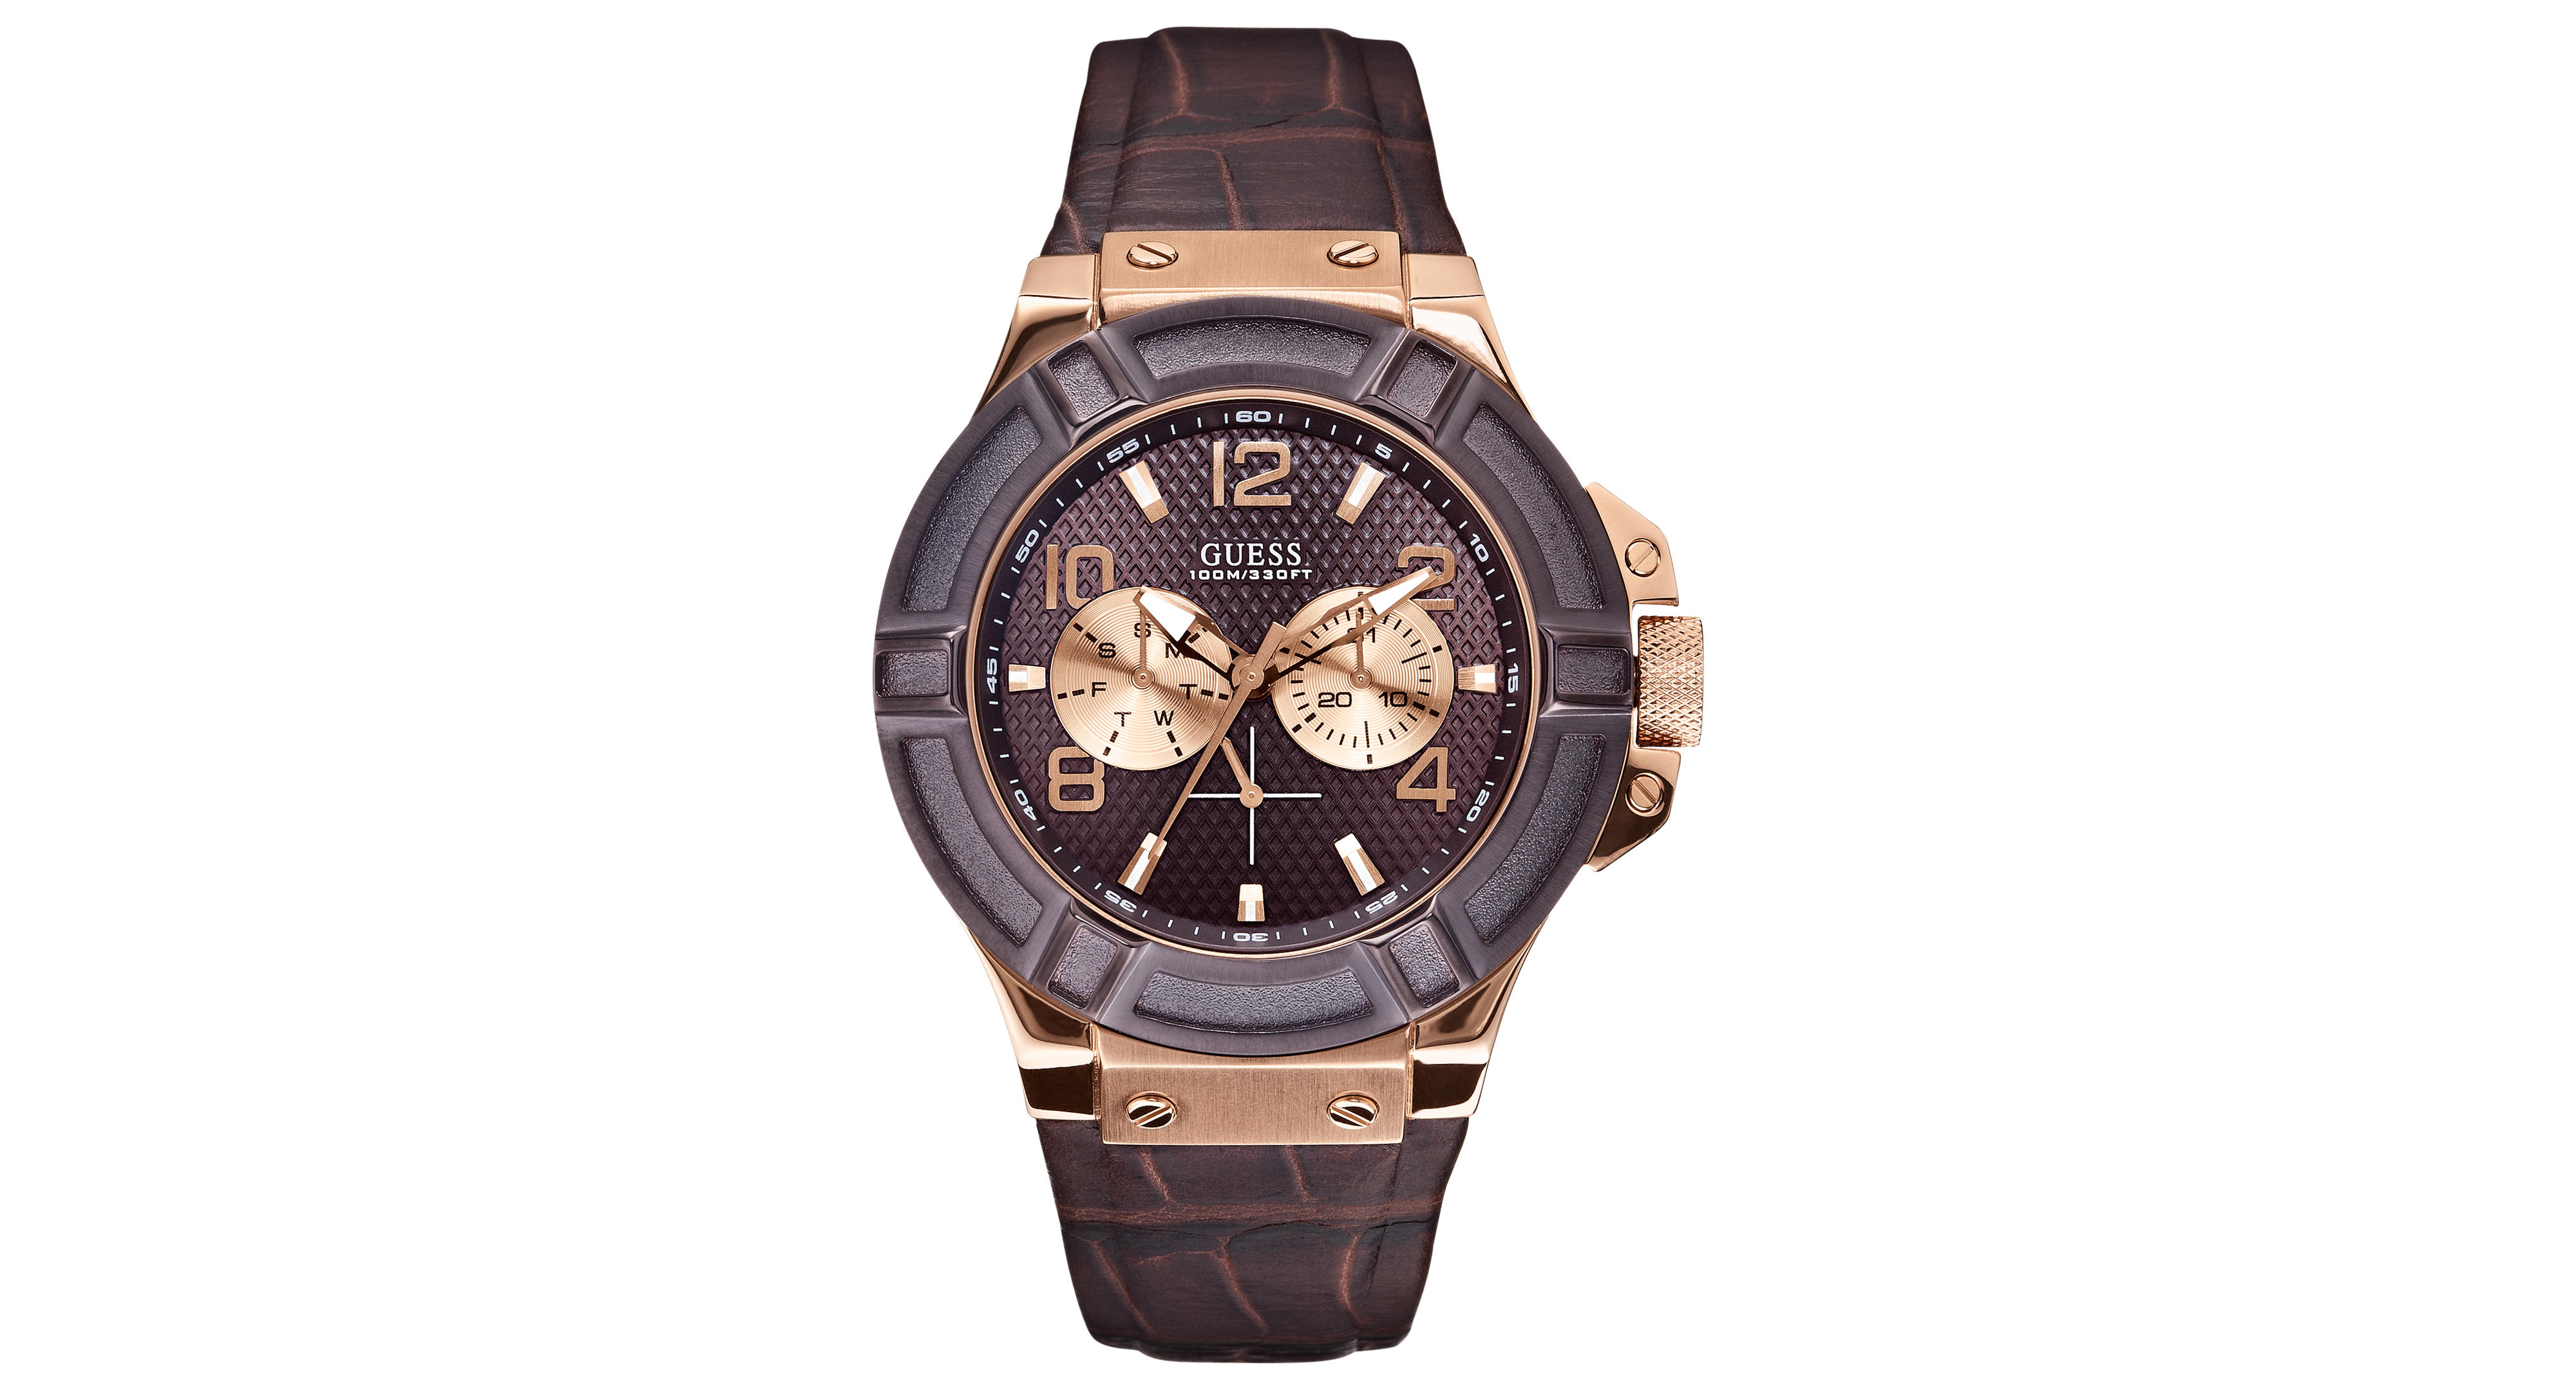 guess watch men s brown croco leather strap 46mm u0040g3 guess men s rigor standout multi function dressy sport watch genuine leather brown strap dial rose gold tone case water resistance 10 atm 100